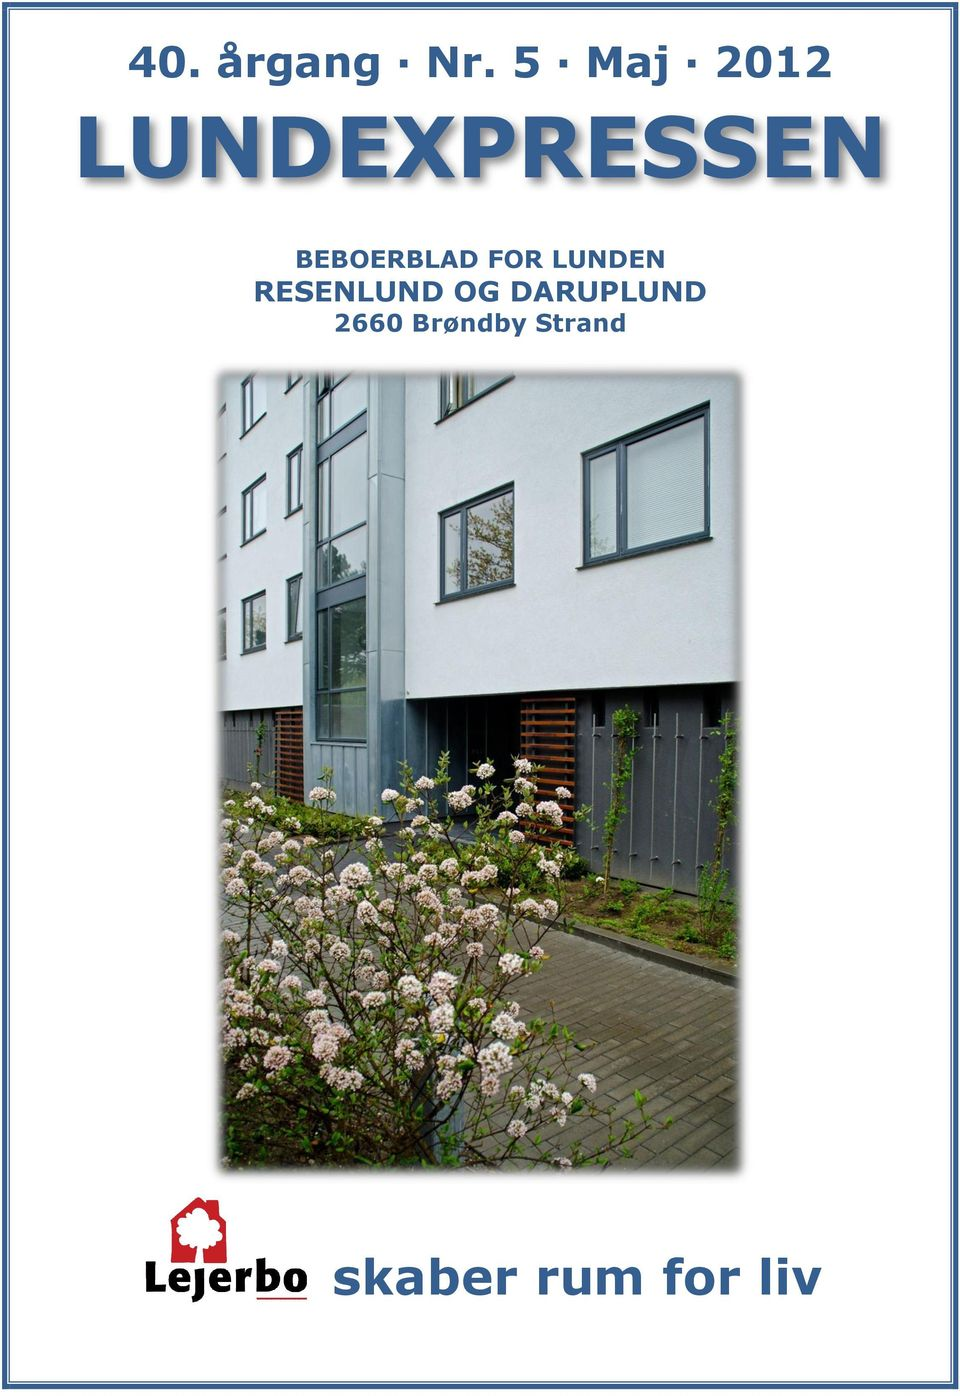 BEBOERBLAD FOR LUNDEN